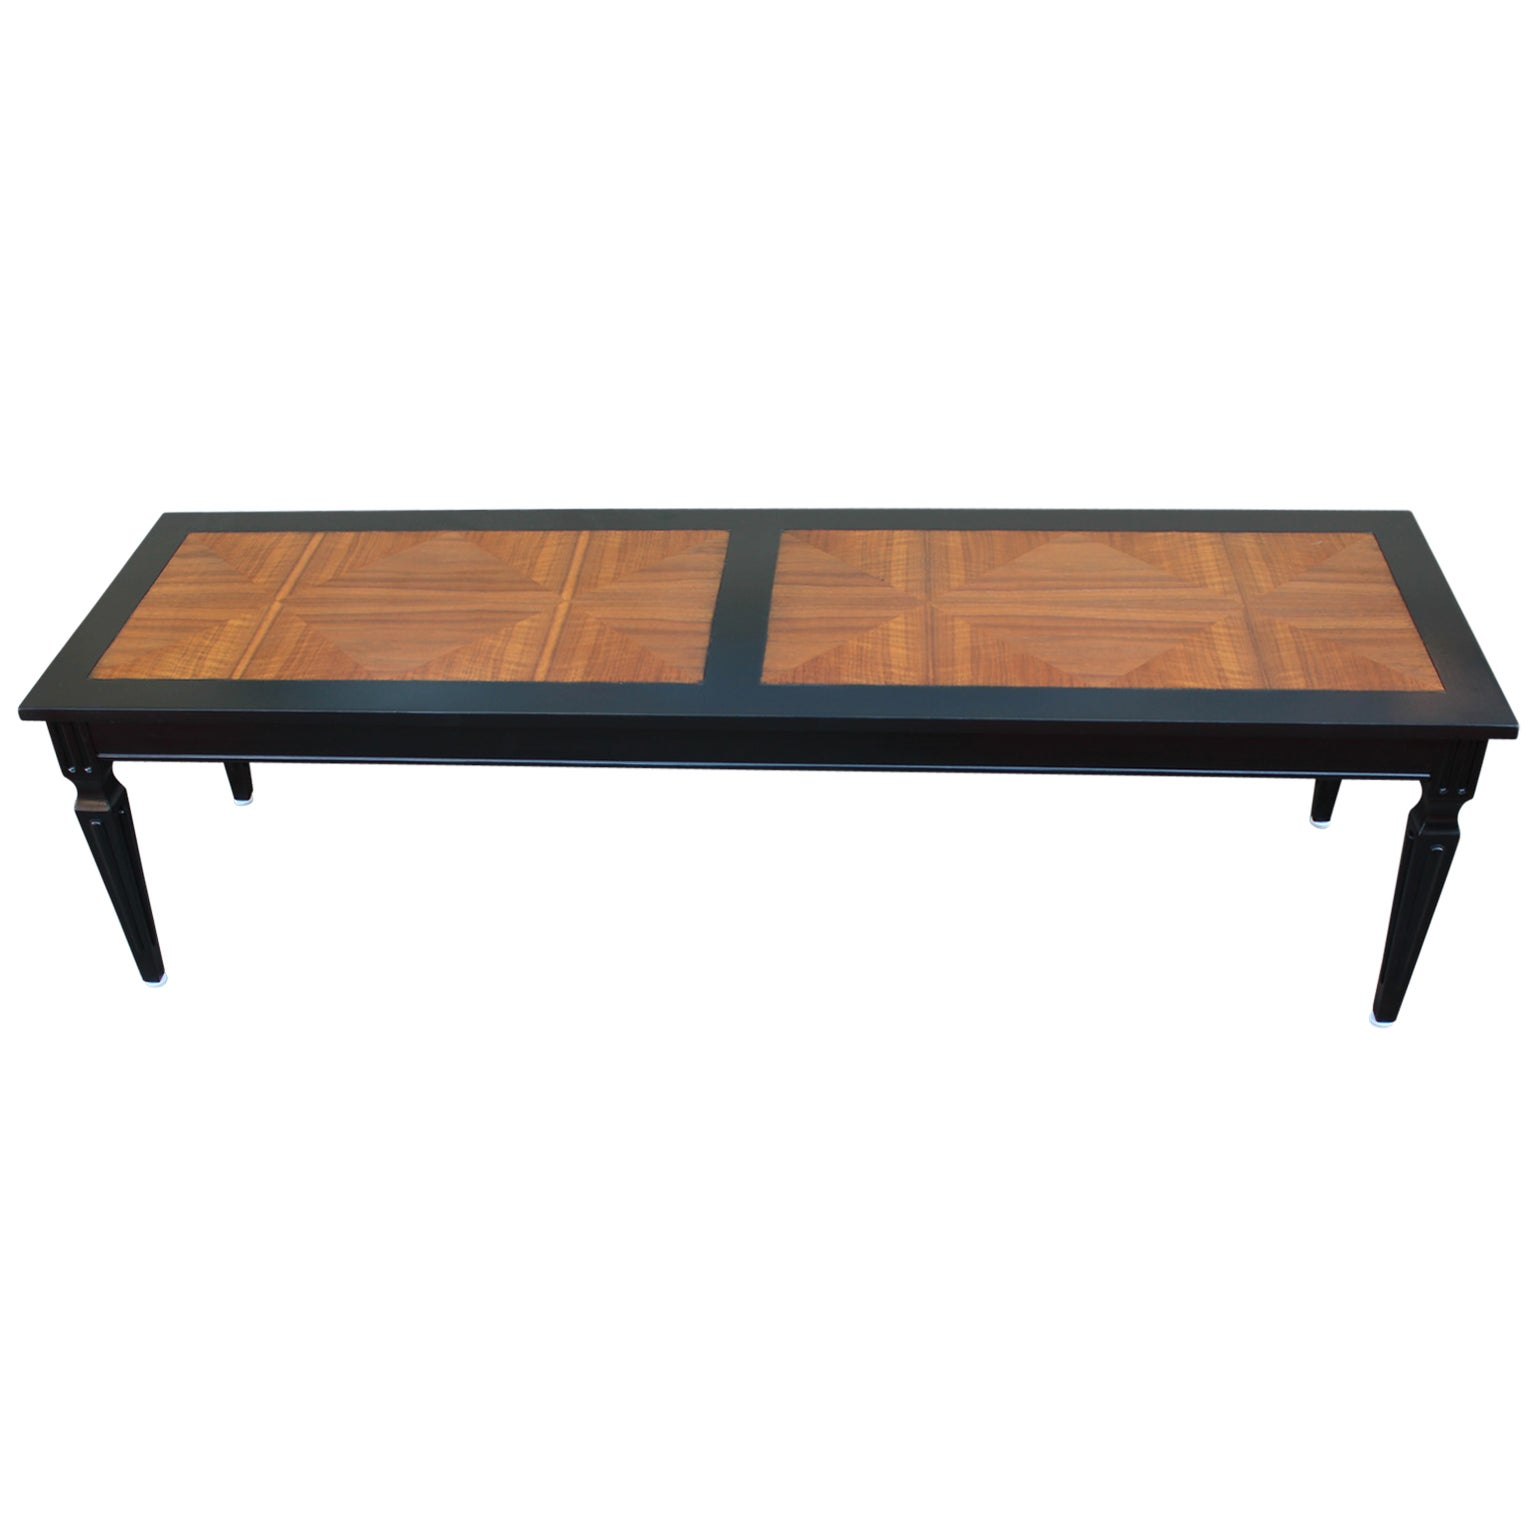 Table Luxe Luxe Parquet And Ebonized Modern Two Tone Coffee Table By Baker